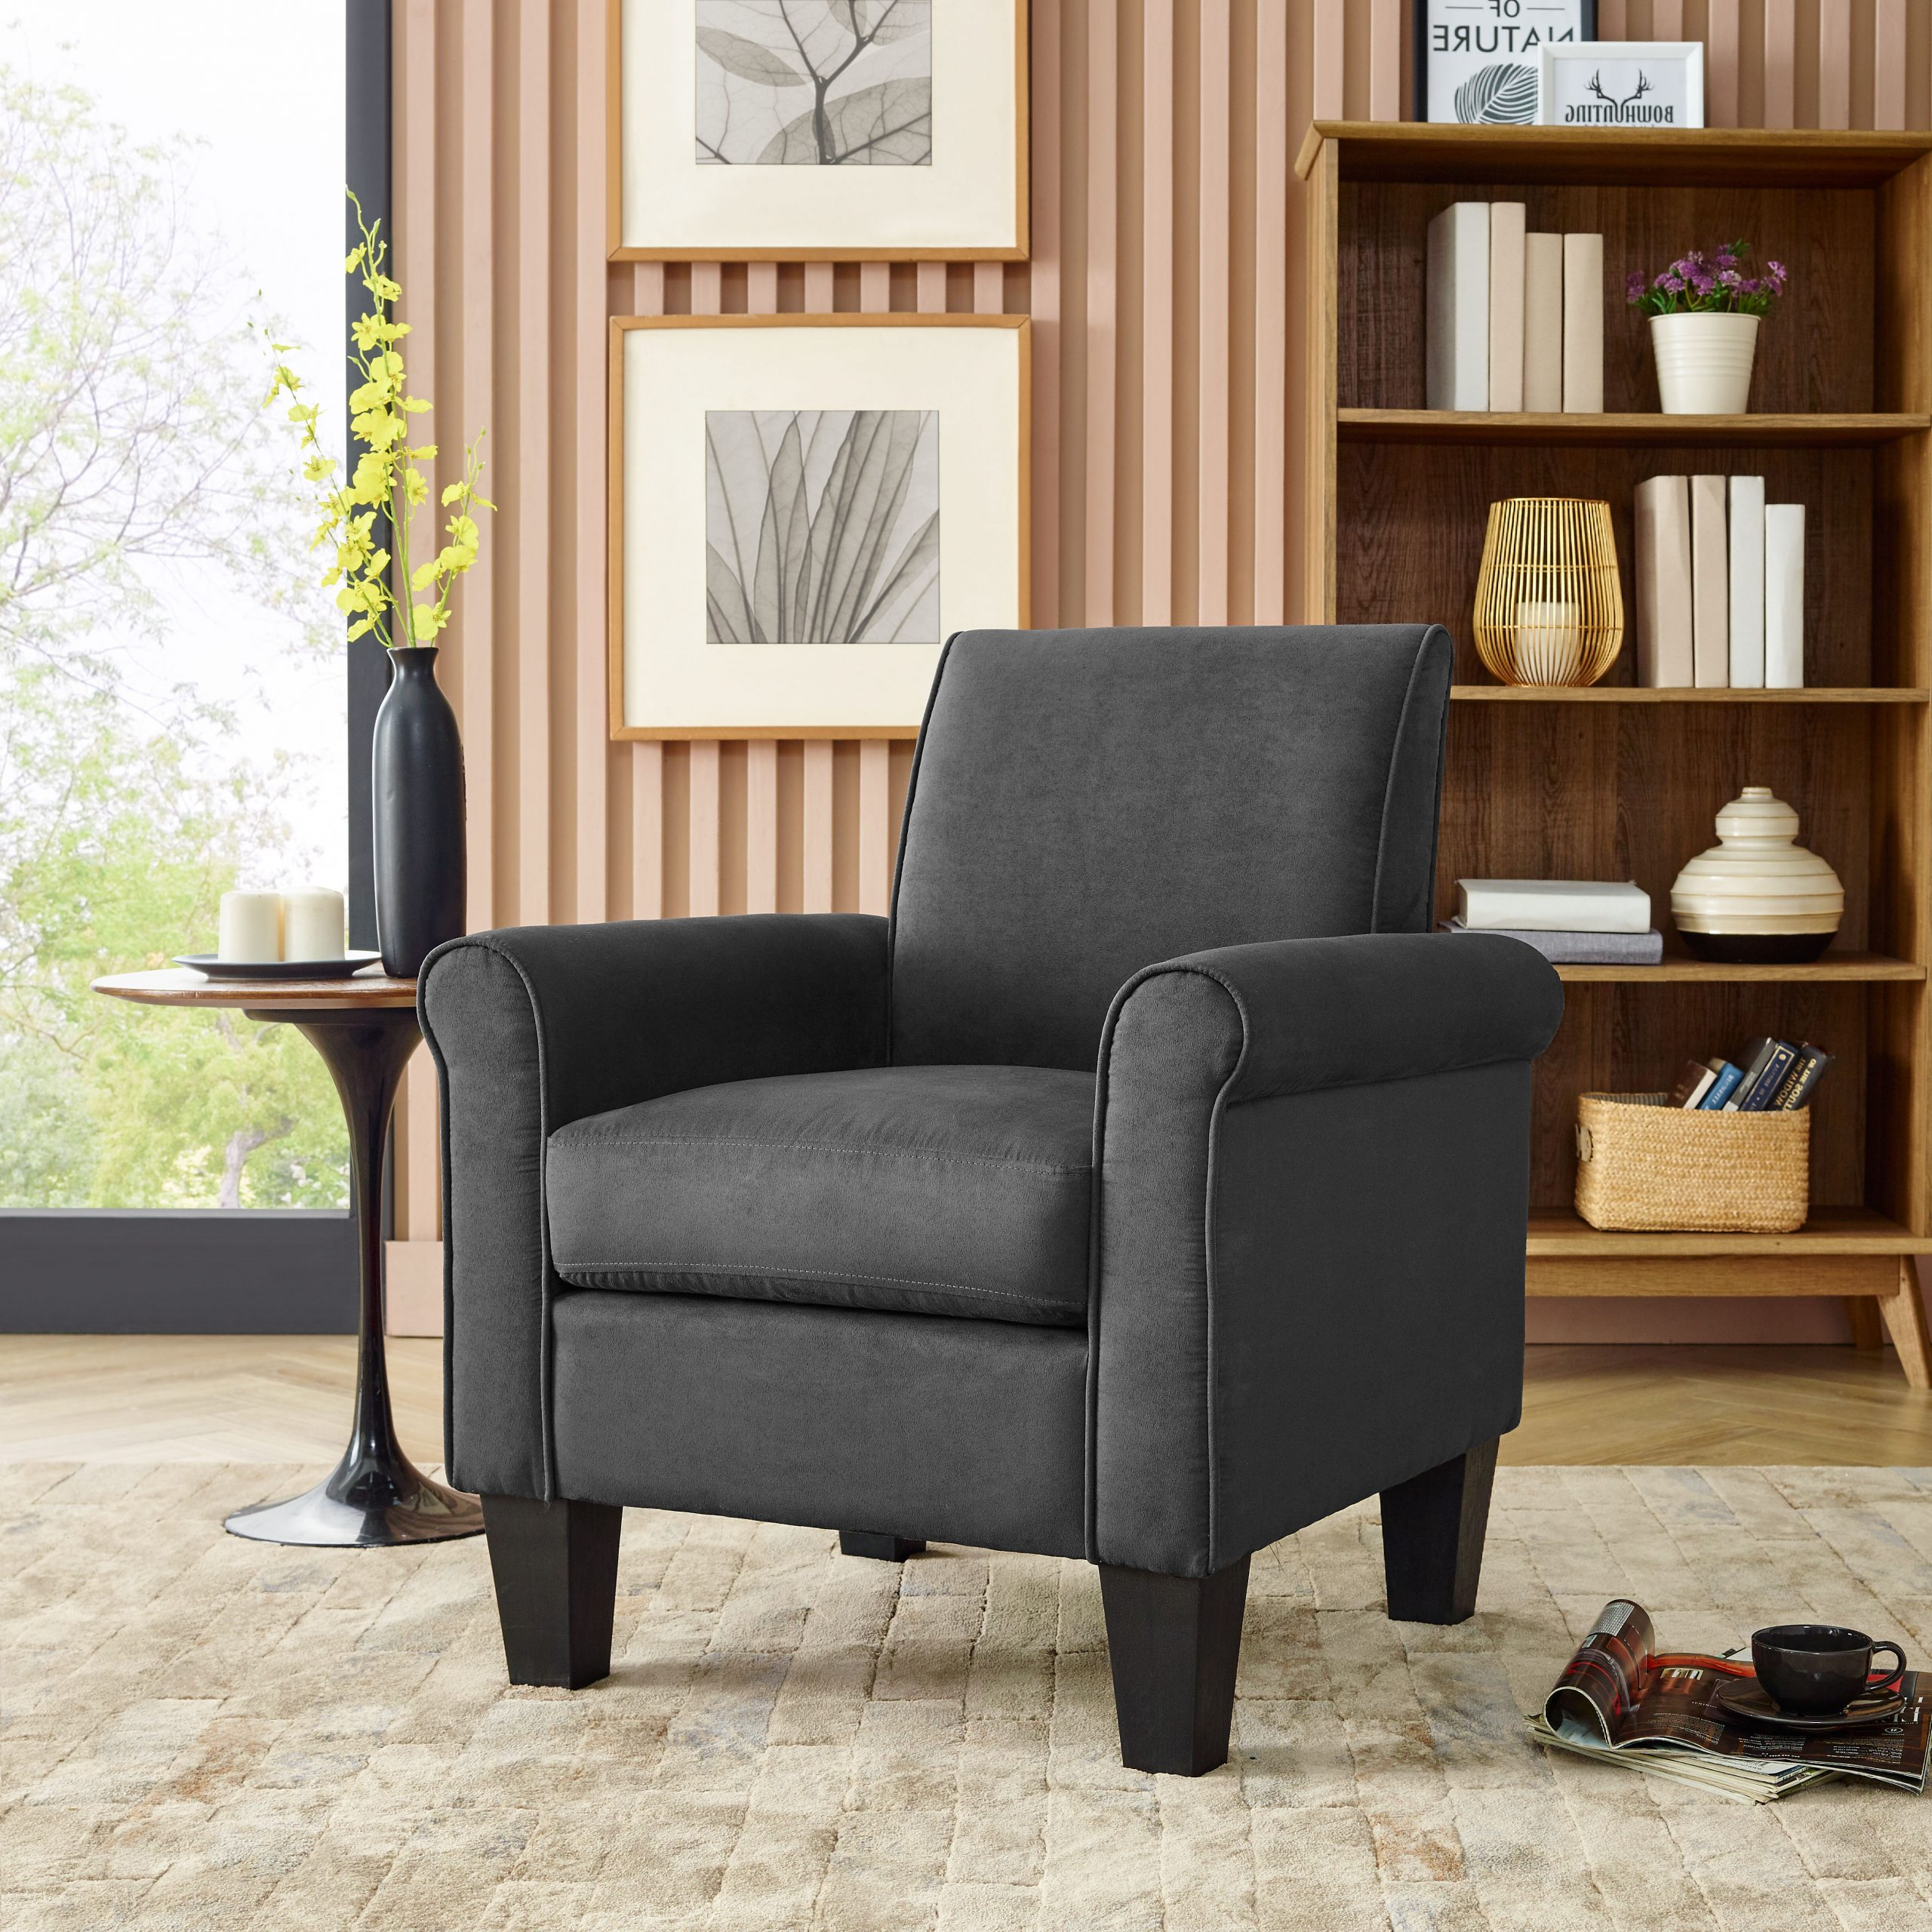 Hiltz Armchairs Pertaining To Well Liked Armchair (View 6 of 20)